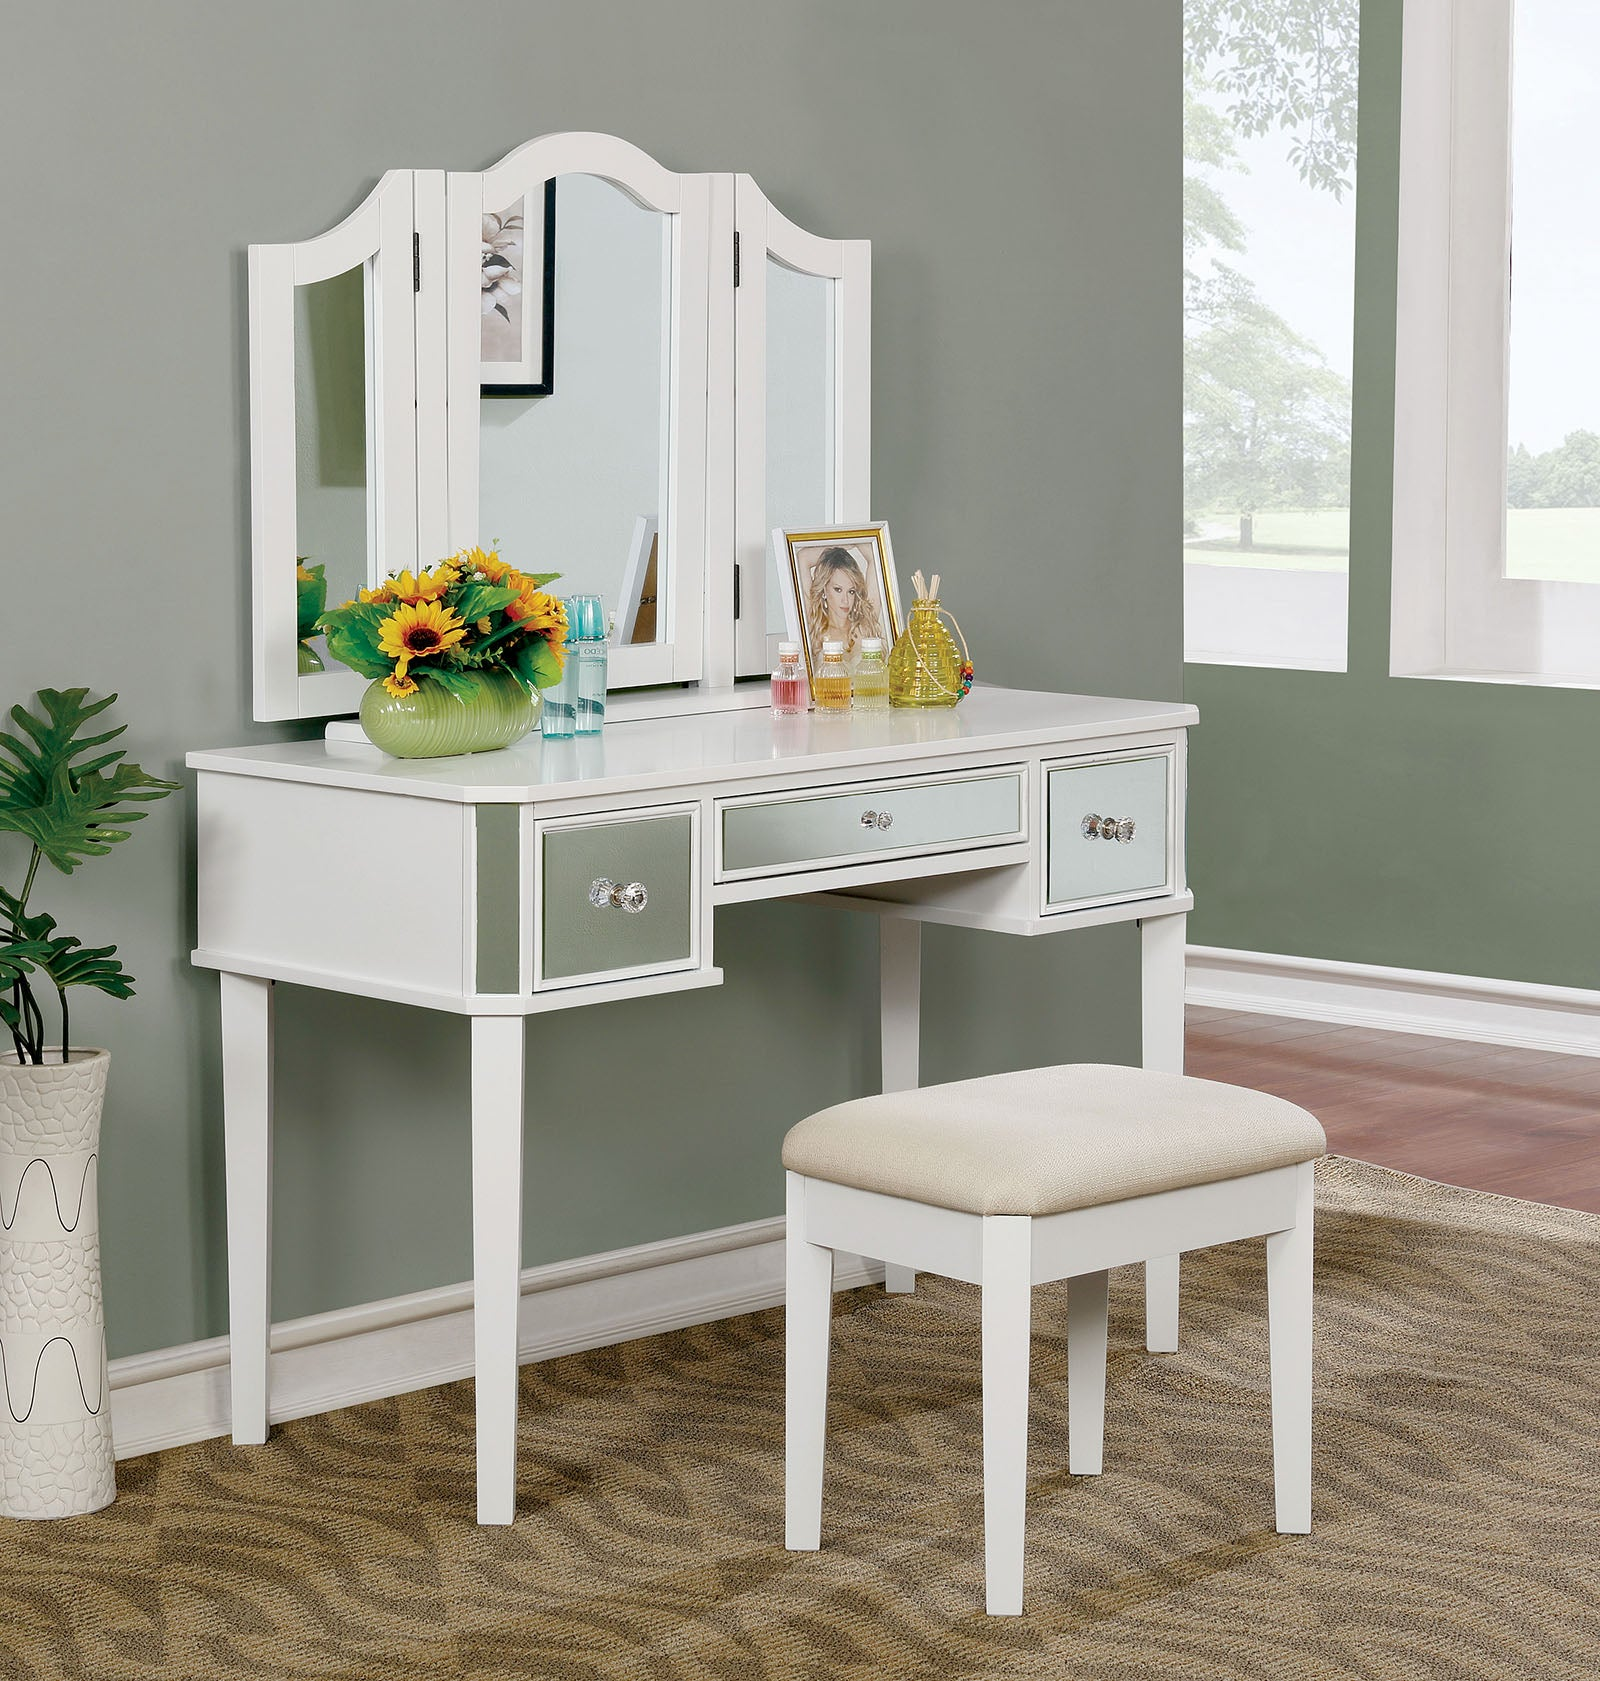 design vanity desk mcnary best diy